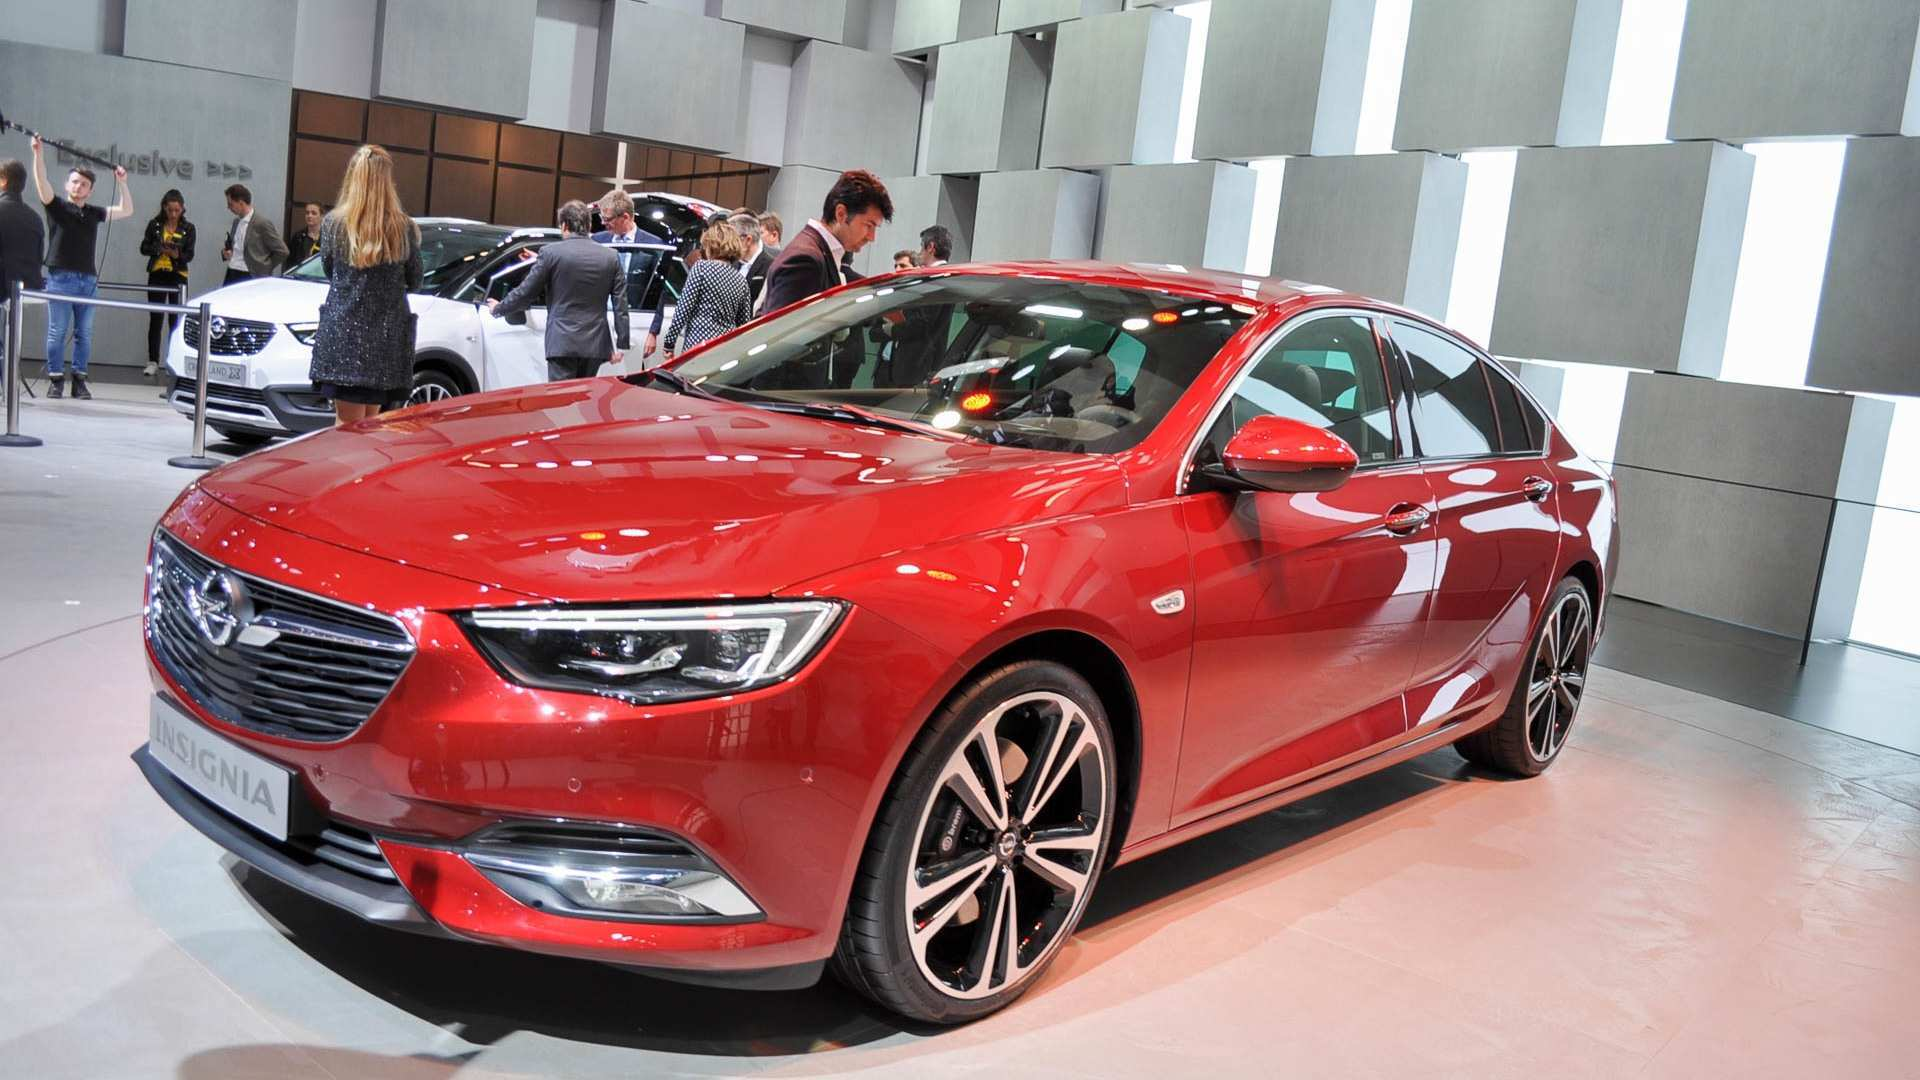 90 Gallery of Yeni Opel Insignia 2020 Overview with Yeni Opel Insignia 2020